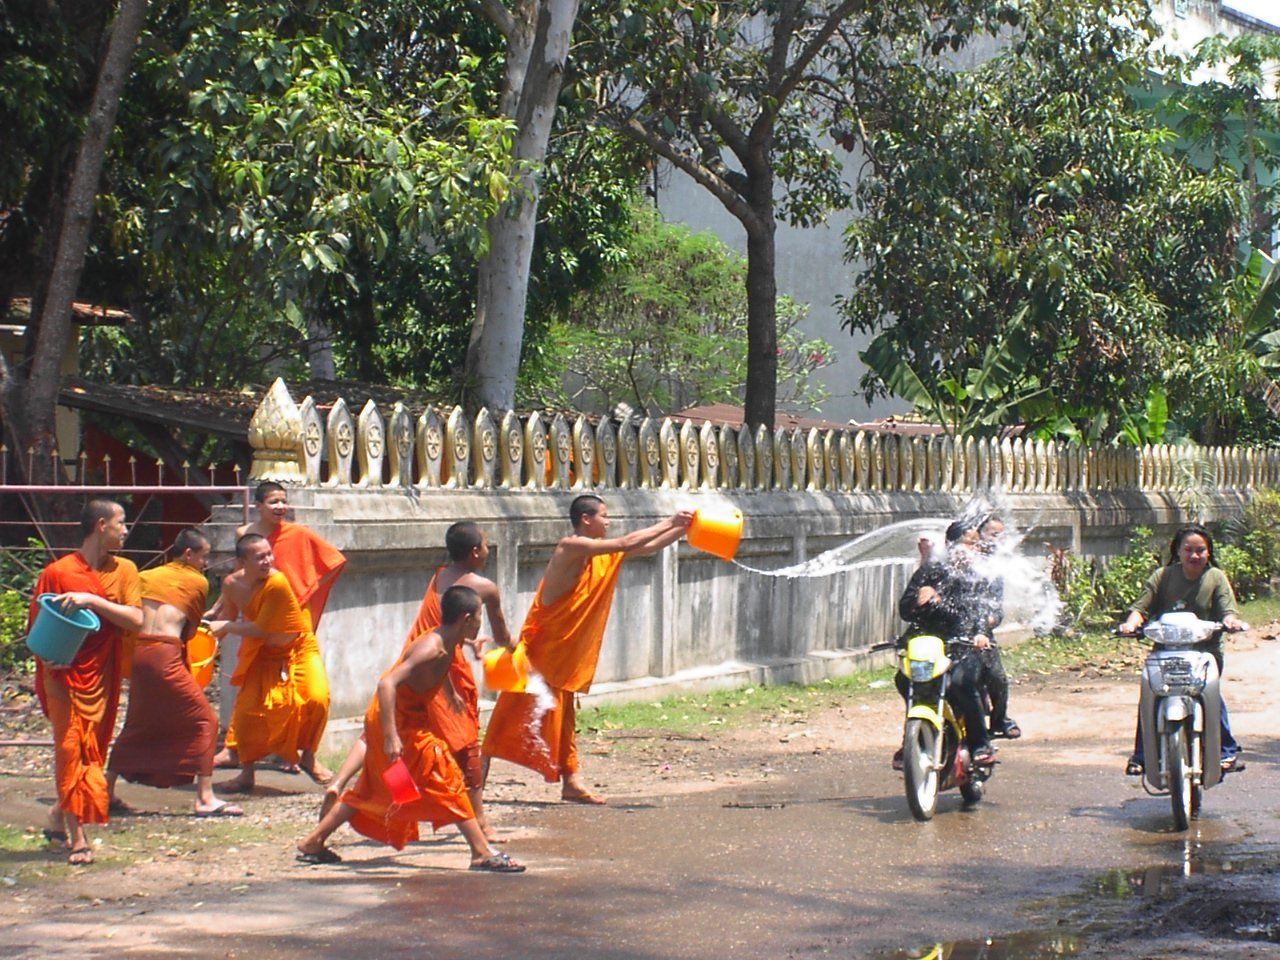 Buddhist monks participating in Songkran water-throwing. Photo taken on April 13, 2002.